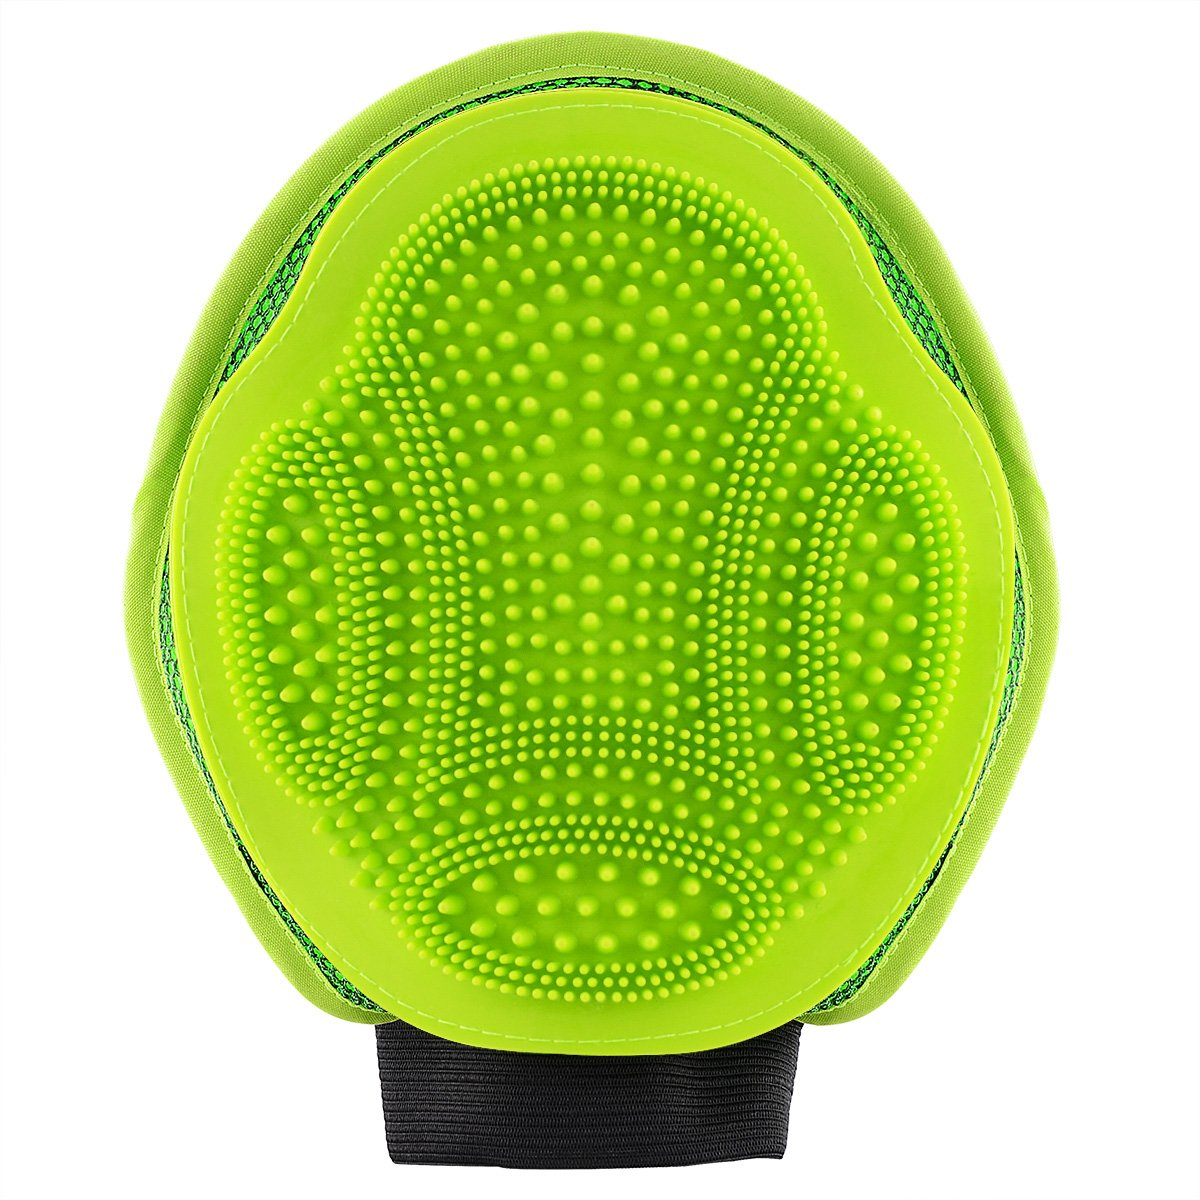 2-in-1 Pet Glove: Grooming Tool + Furniture Pet Hair Remover Mitt - Dual Sided Rubber Tips Soft Deshedding Grooming Massage Glove Brush for Big Small Long Short Hair Dog Cat,Green MOSTY